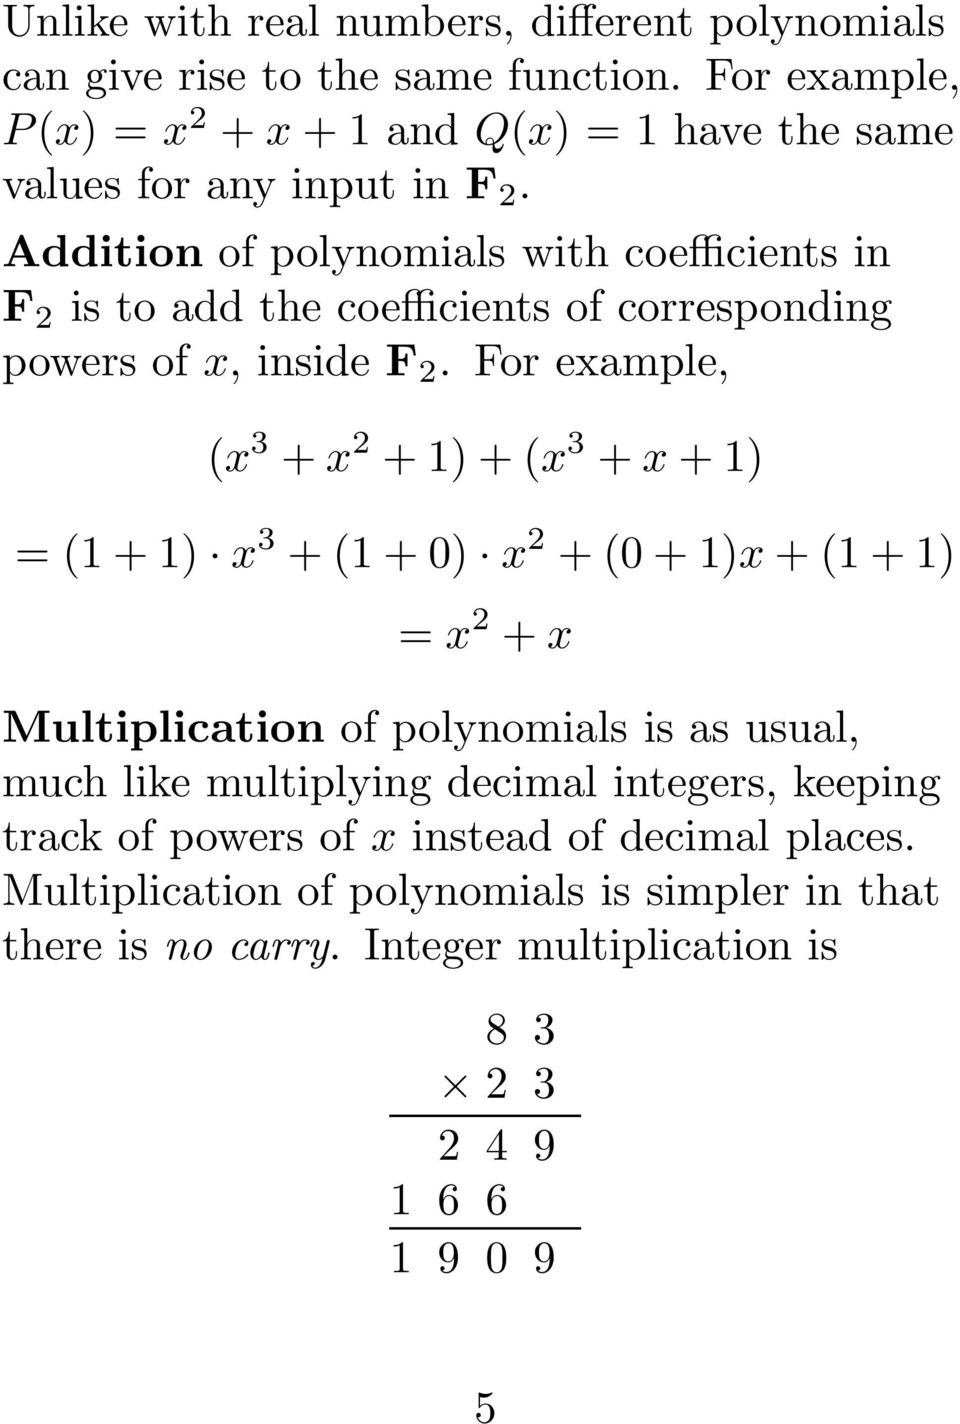 Addition of polynomials with coefficients in F 2 is to add the coefficients of corresponding powers of x, inside F 2.